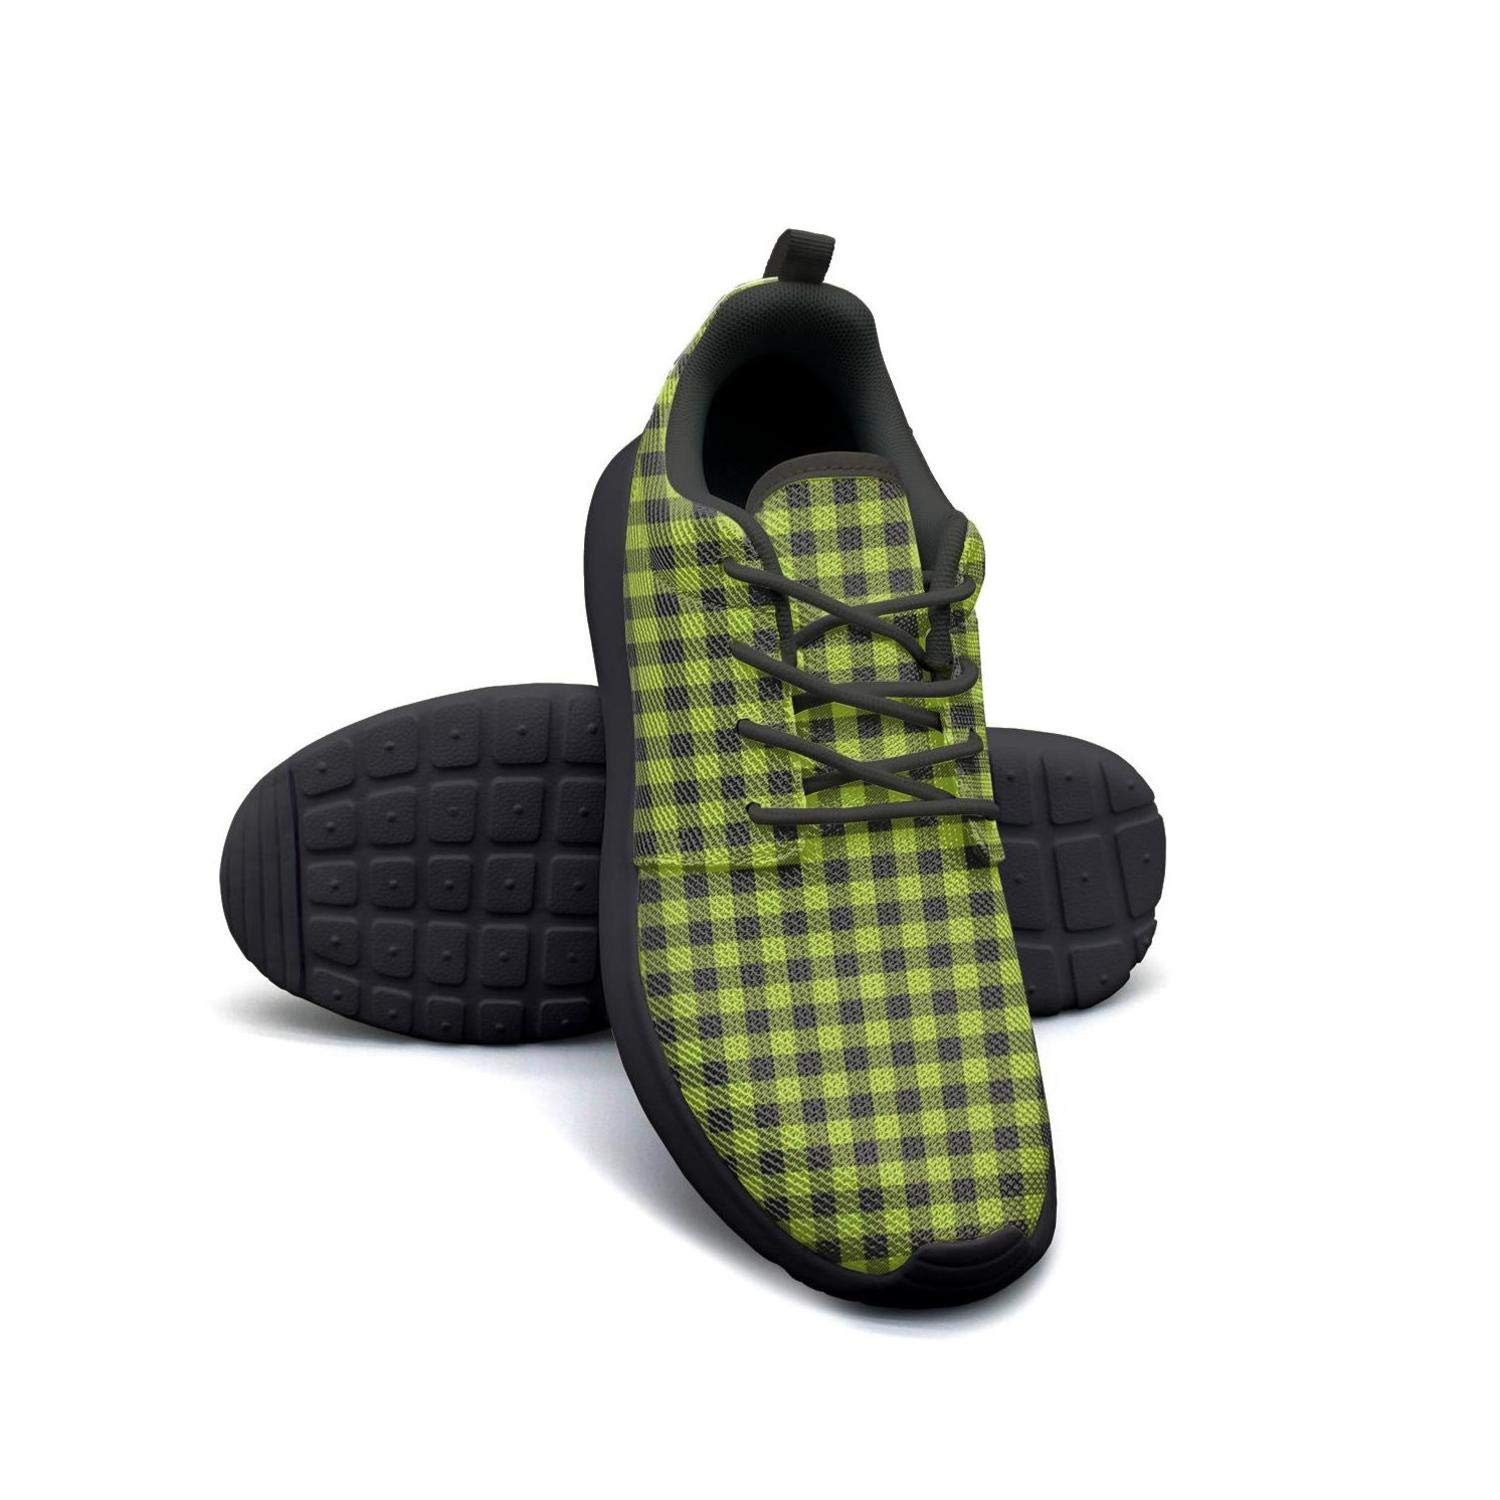 YSLC Plaid Printing Green and Black Plaid Running Shoes Lightweight Women Sneaker Travel Breathable Shoes